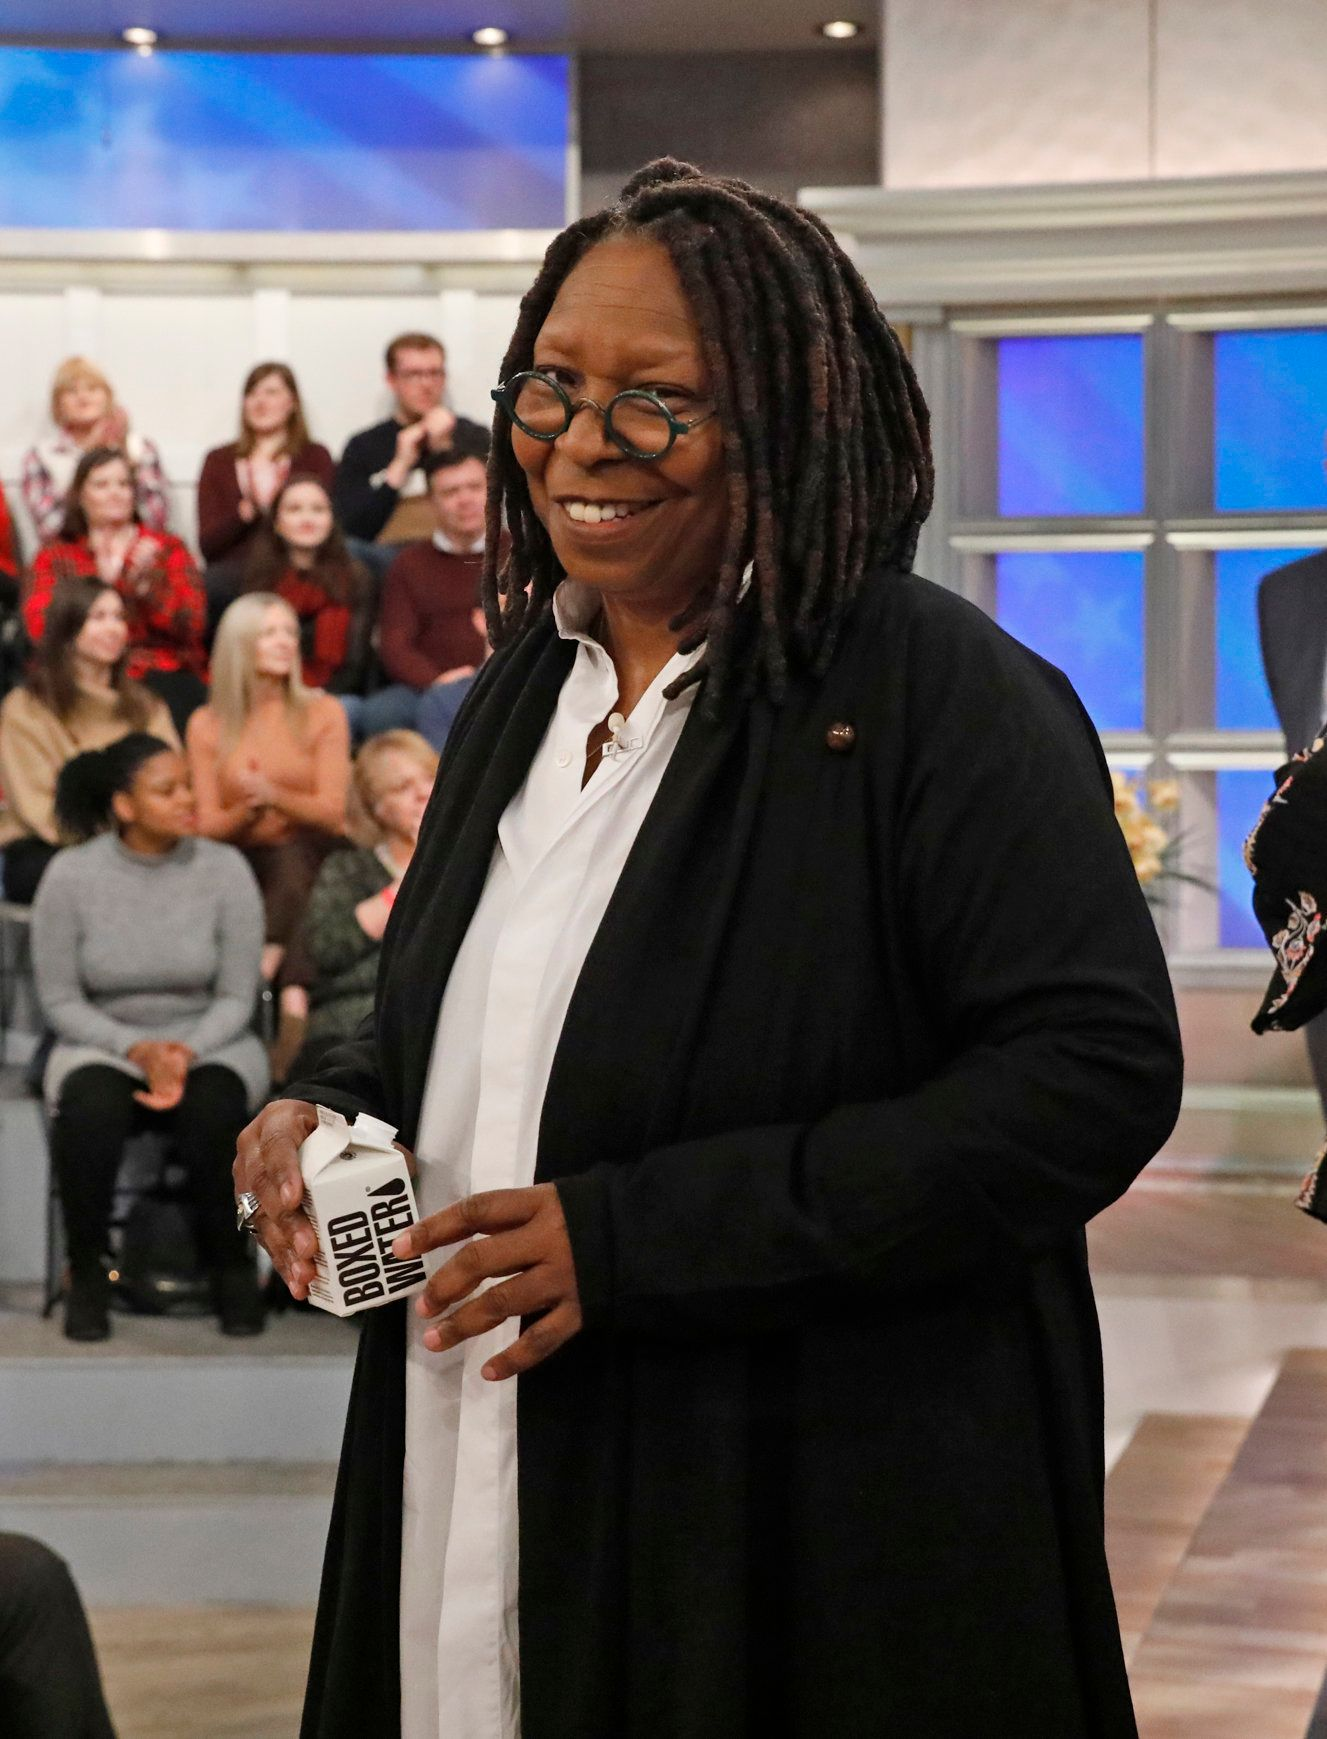 THE VIEW - Chris Christie is the guest on ABC's 'The View' Wednesday, January 30, 2019.   'The View' airs Monday-Friday (11:00 am-12:00 noon, ET) on the ABC Television Network.     (Photo by Heidi Gutman/ABC via Getty Images) WHOOPI GOLDBERG